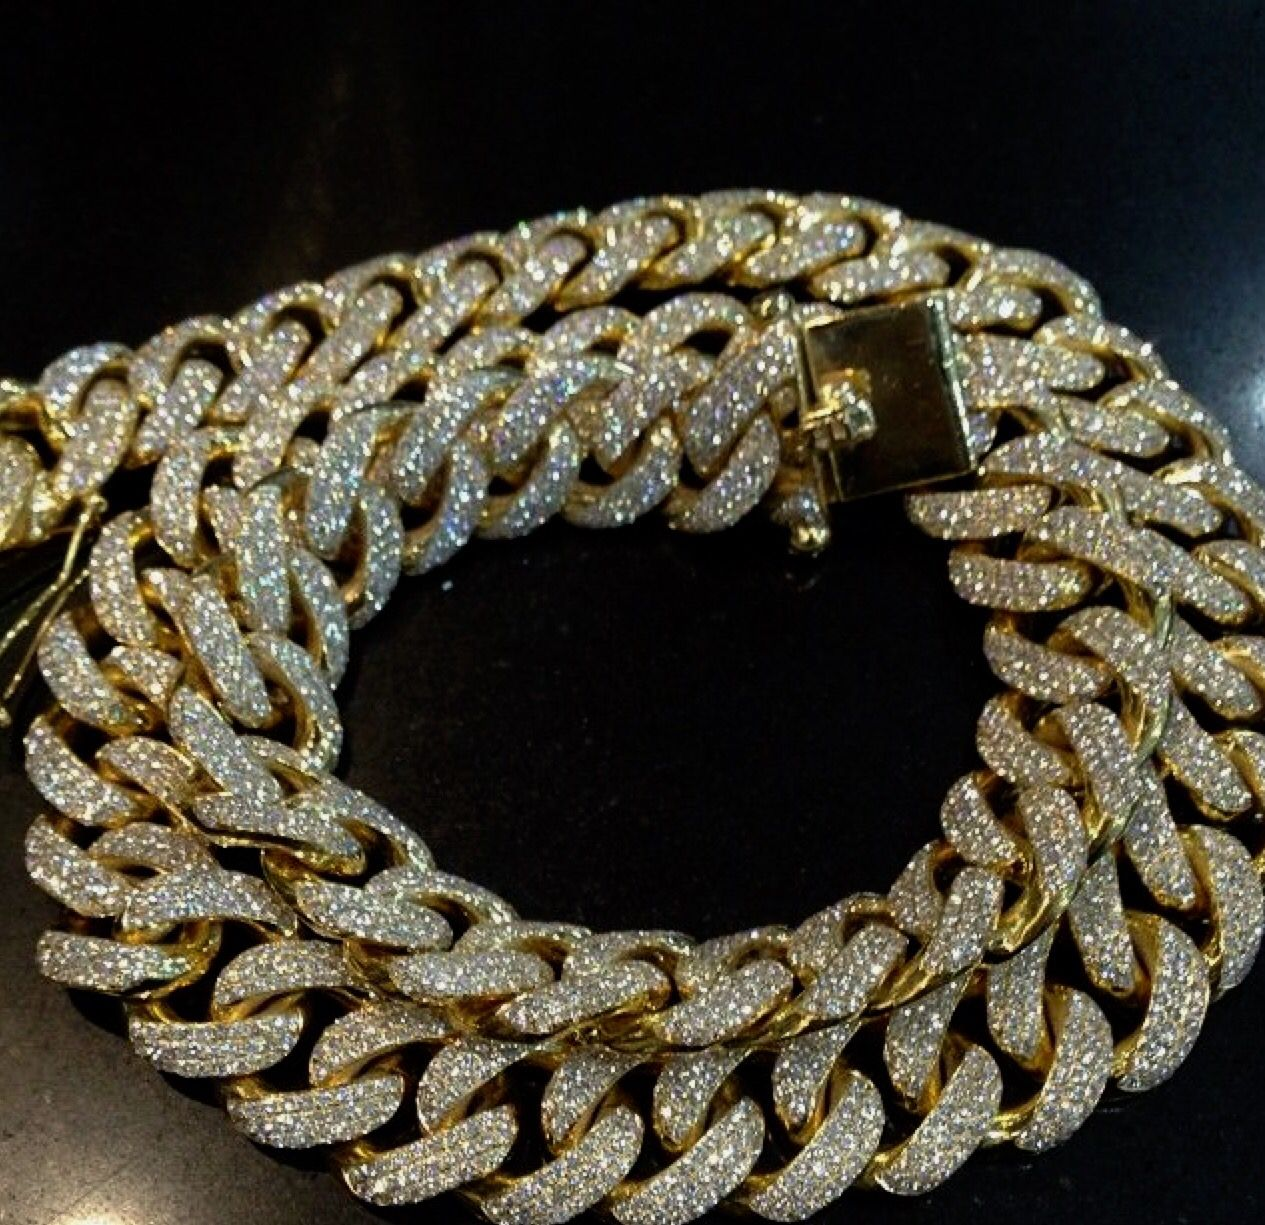 product gold detail design jewelry on chain chains latest expensive mens buy designs fashion